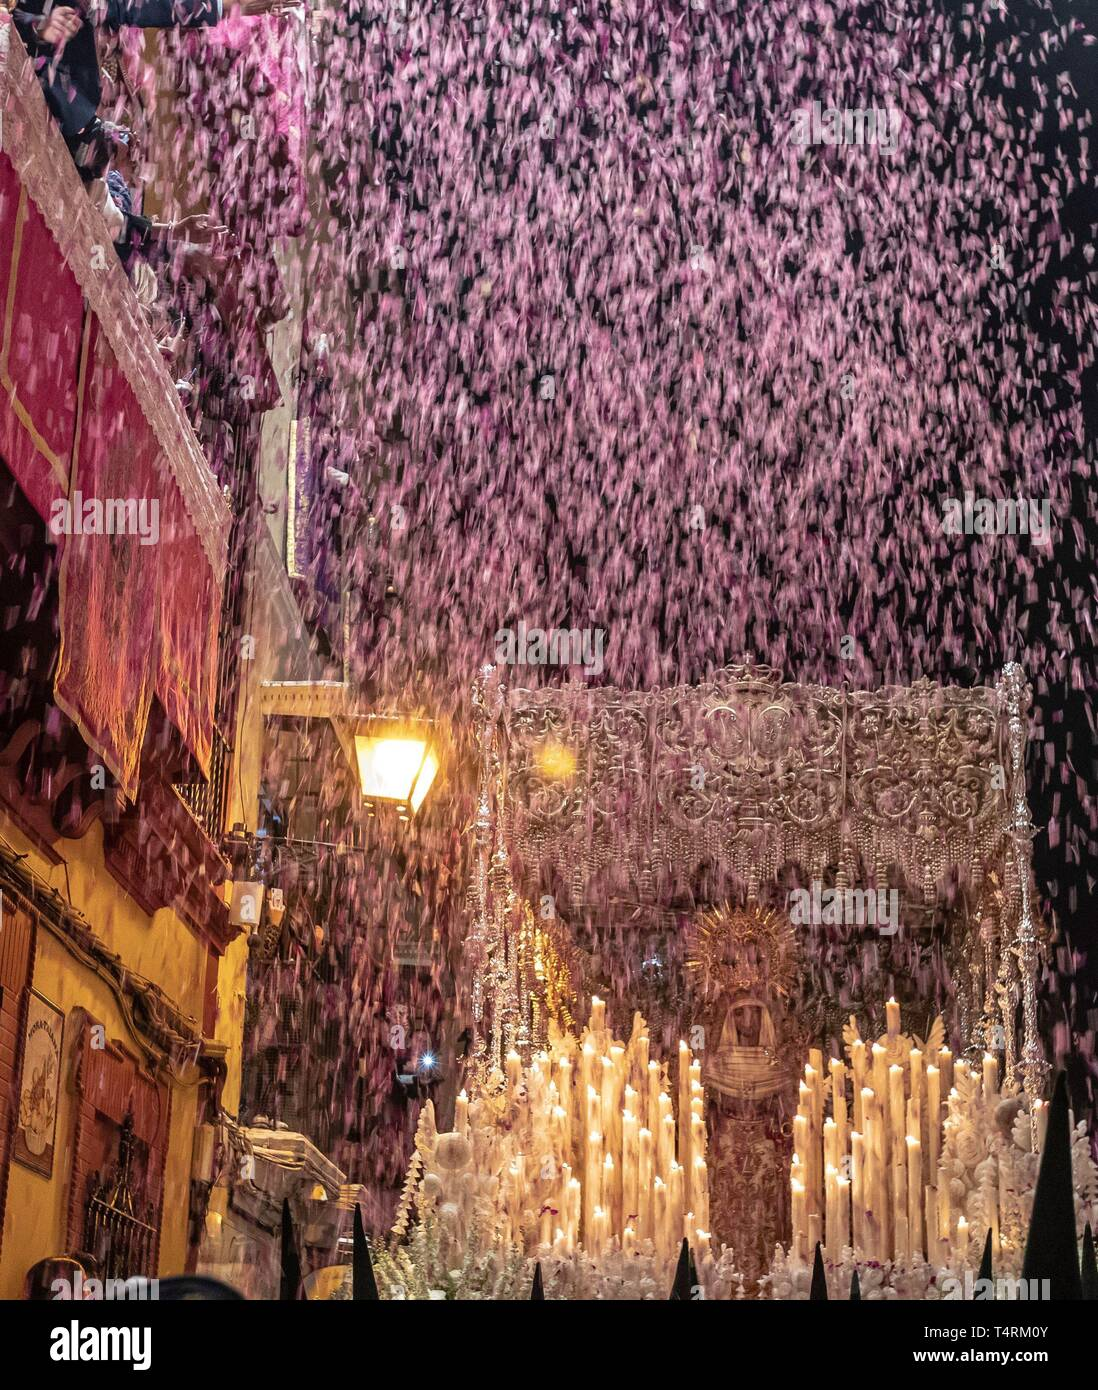 Seville, Spain. 19th Apr, 2019. Petals are thrown from the balconies as the Virgin of Esperanza de Triana leaves its temple at the neighborhood of Triana during the 'Madruga' (lit: Small Hours) processions in Seville, Spain, 19 April 2019. EFE/ Julio Munoz Credit: EFE News Agency/Alamy Live News - Stock Image